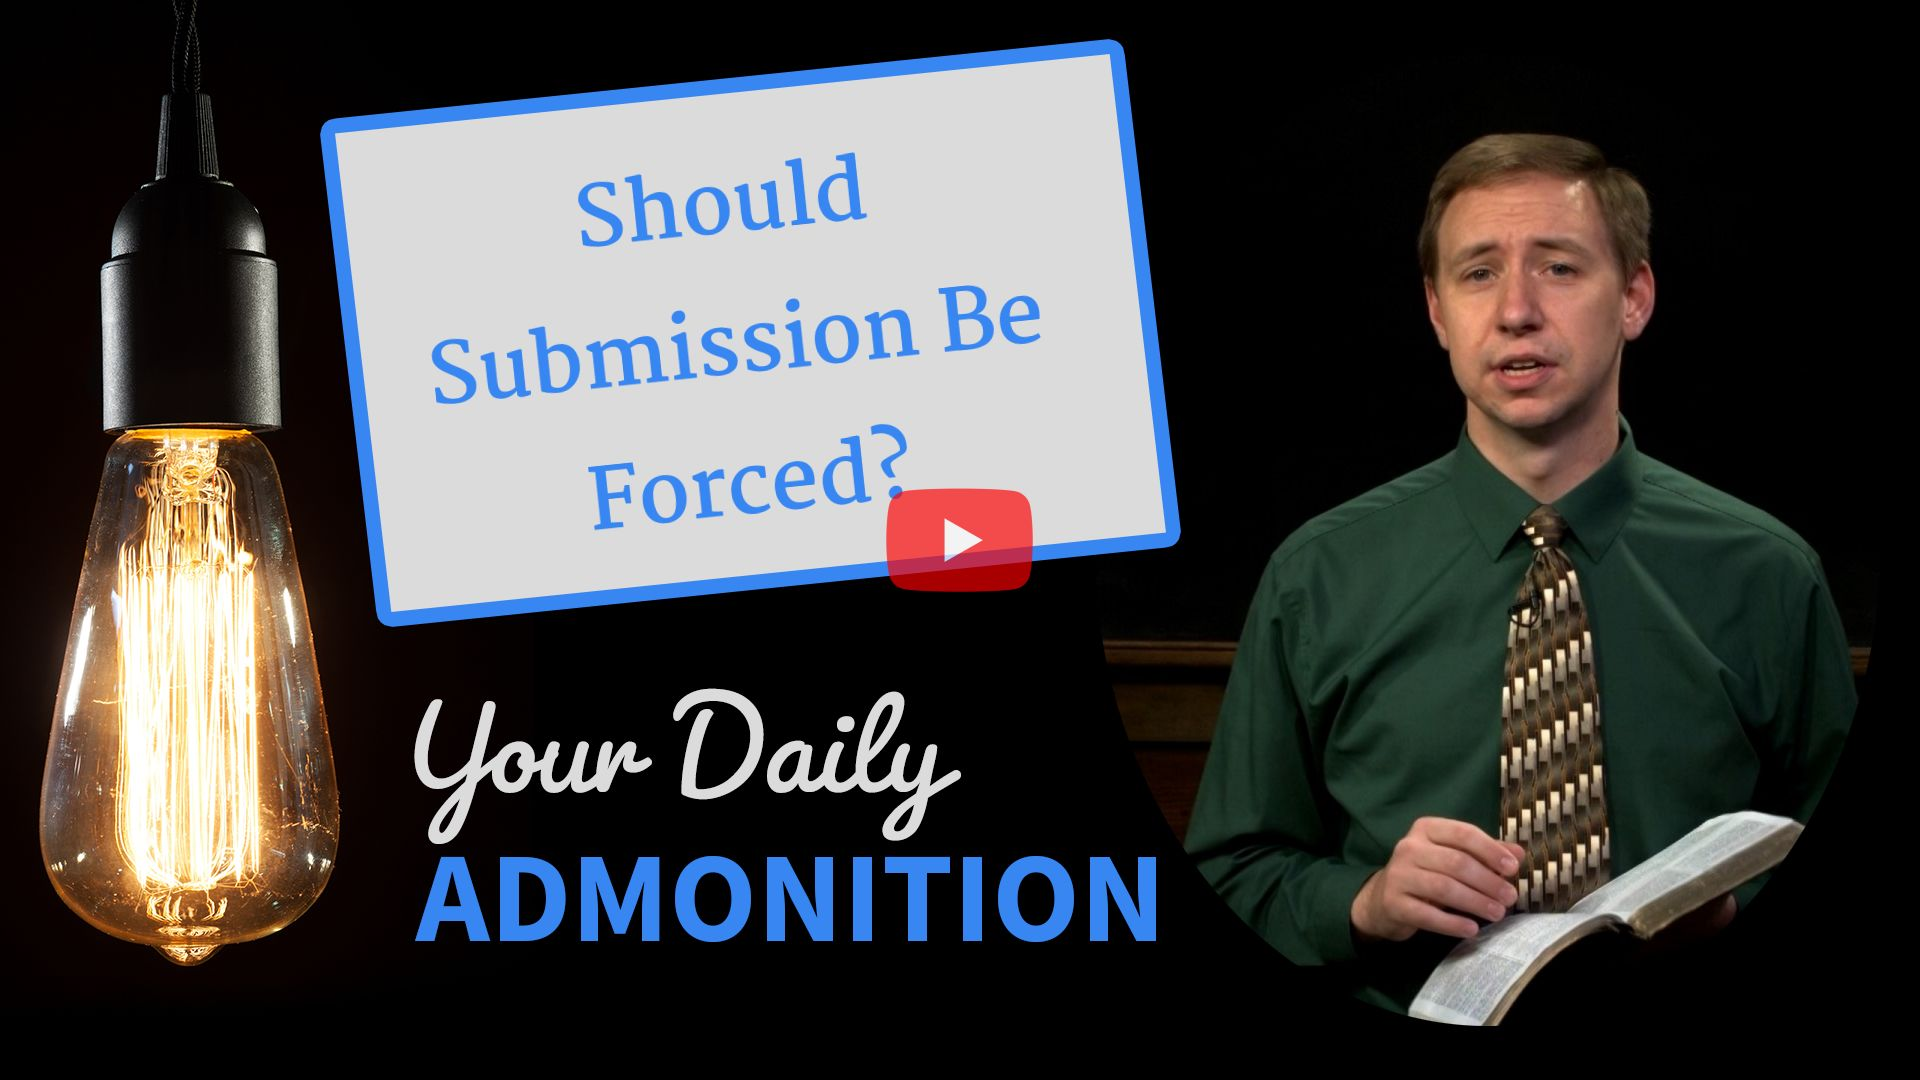 Should Submission Be Forced? – Admonition 326